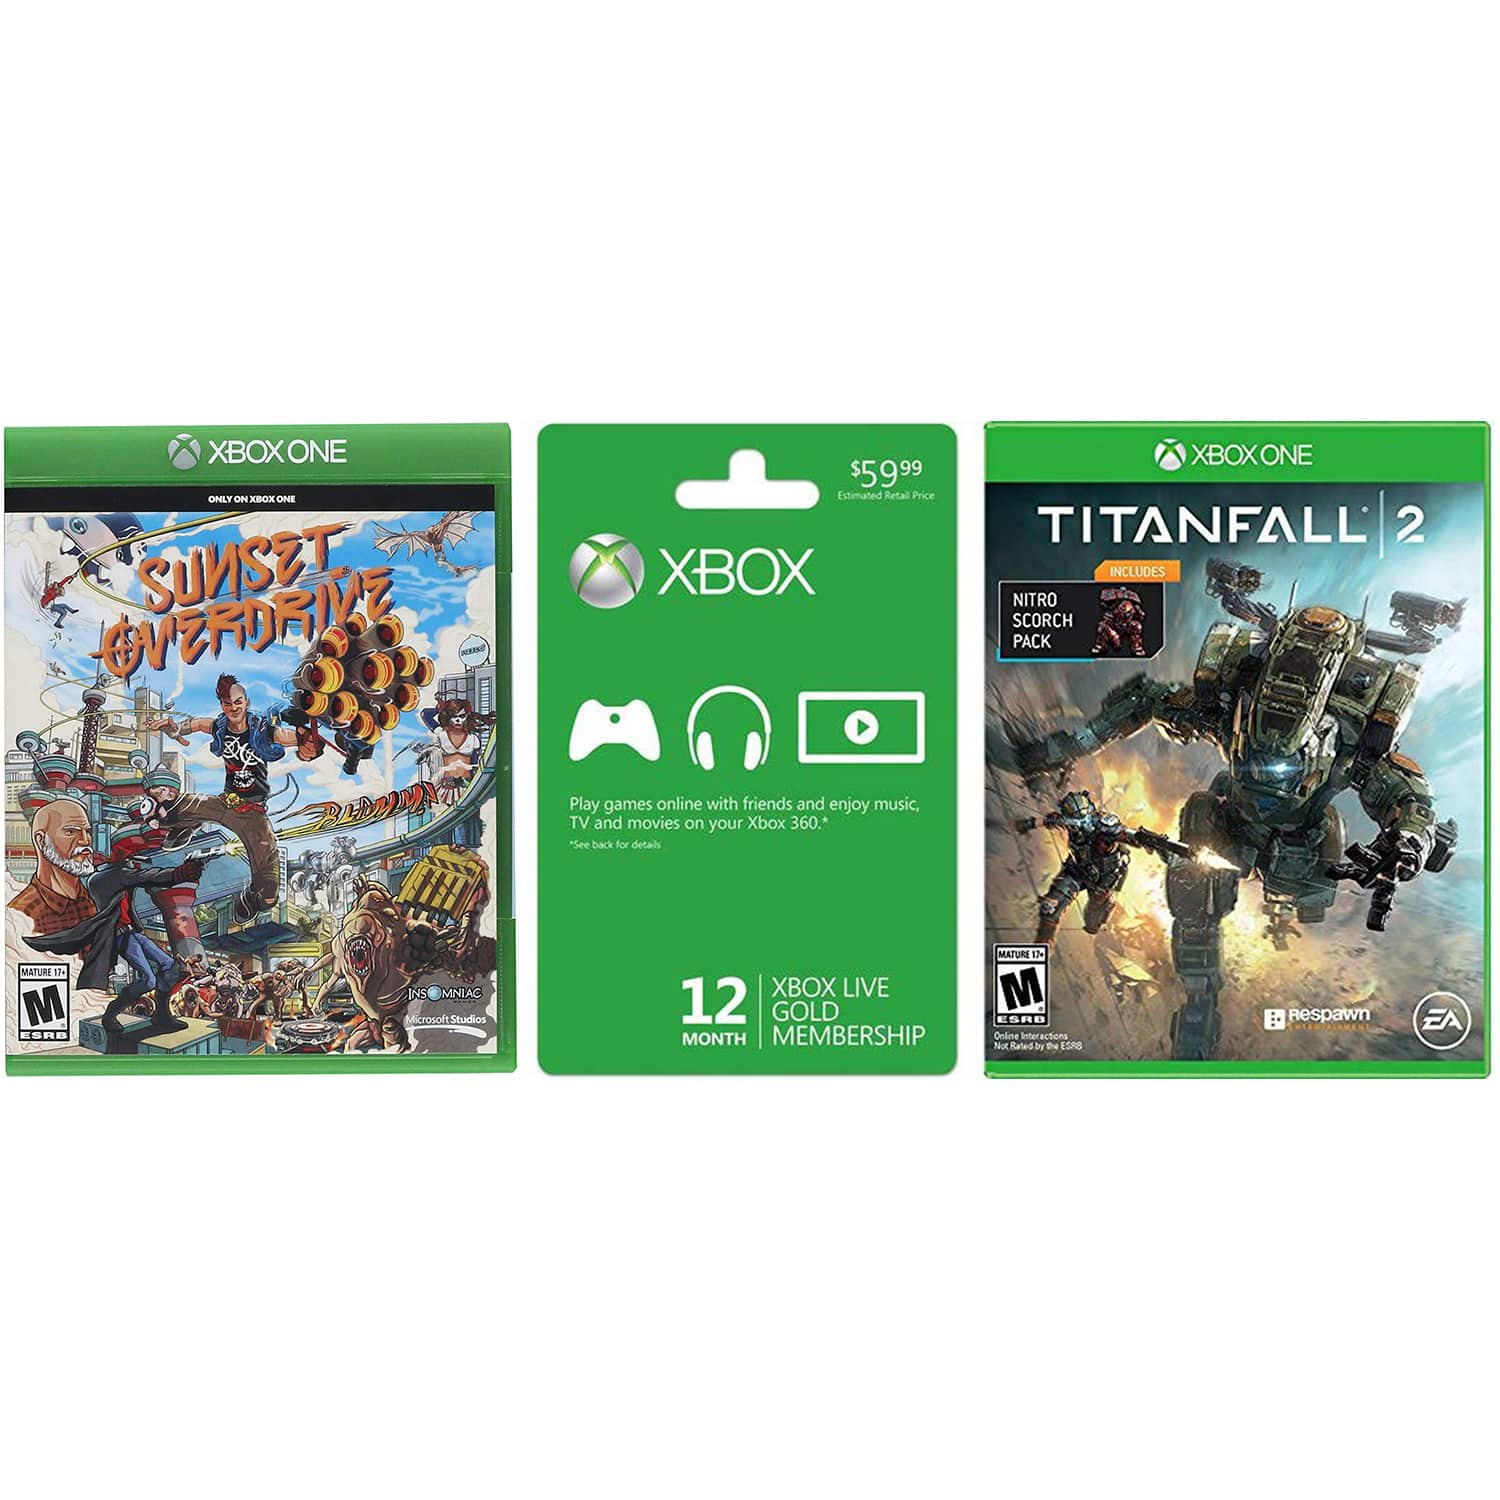 Microsoft Xbox LIVE 12 Month Gold Membership (Physical Card) + Titanfall 2 w/Nitro Pack & Sunset Overdrive - $49.57 + Free Shipping